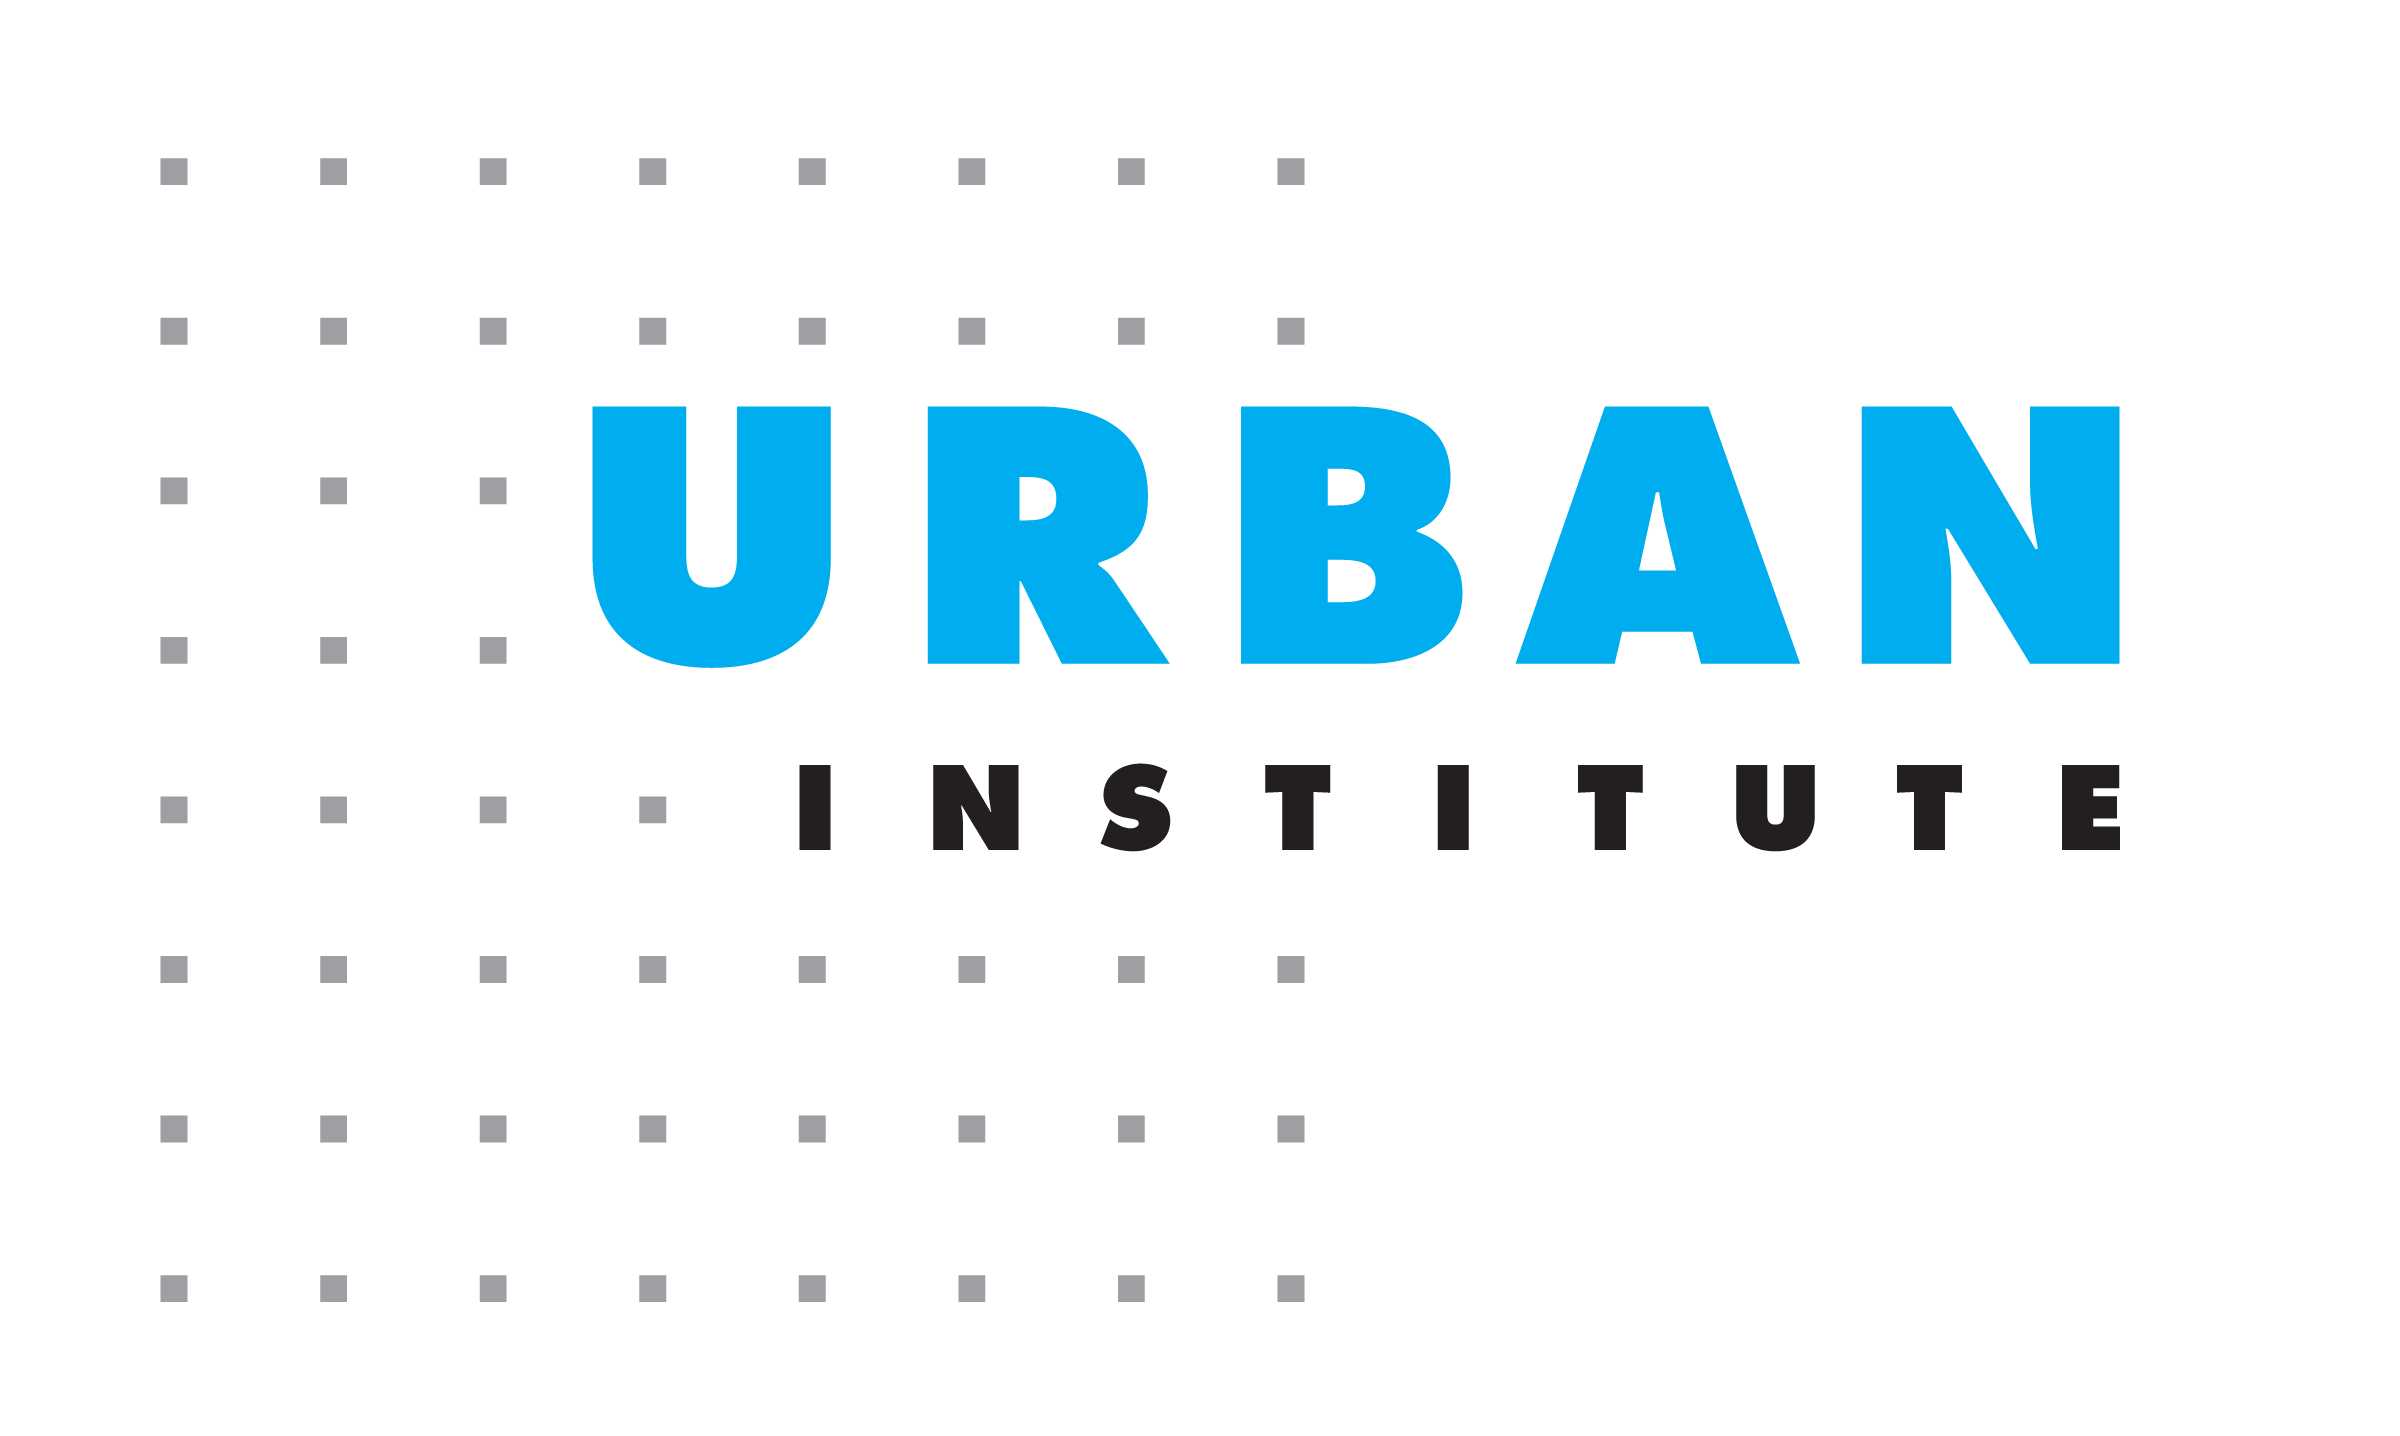 Urban Institute logo